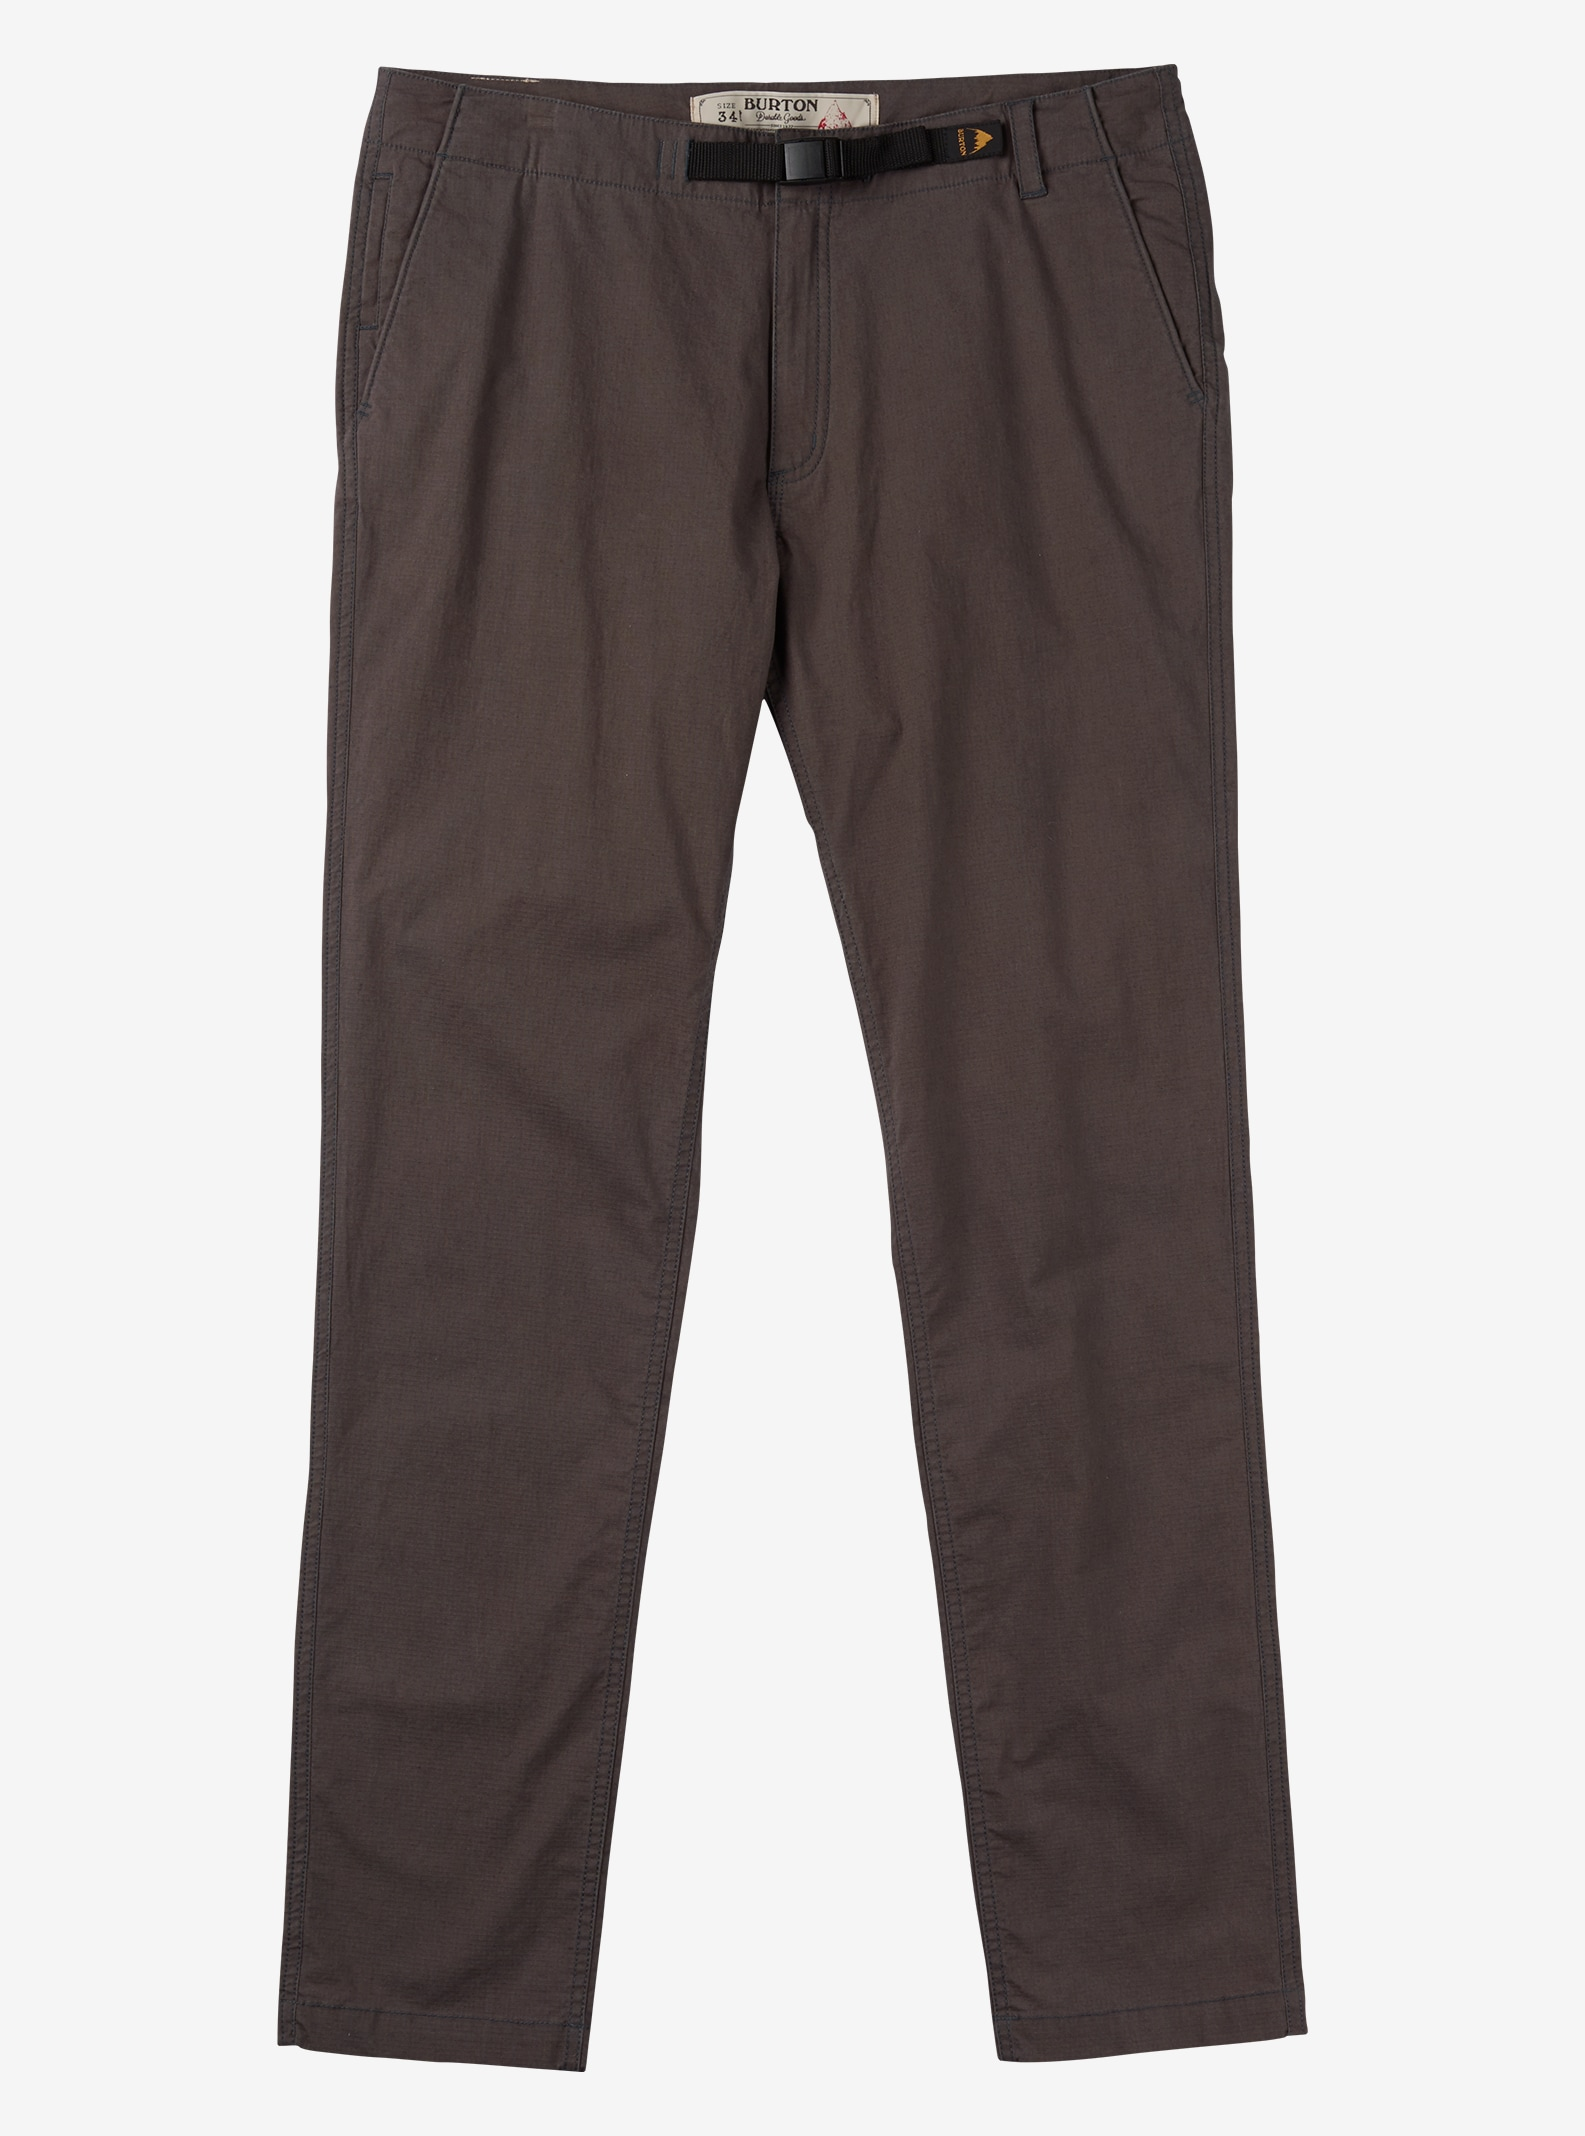 Burton Ridge Pant shown in Eiffel Tower